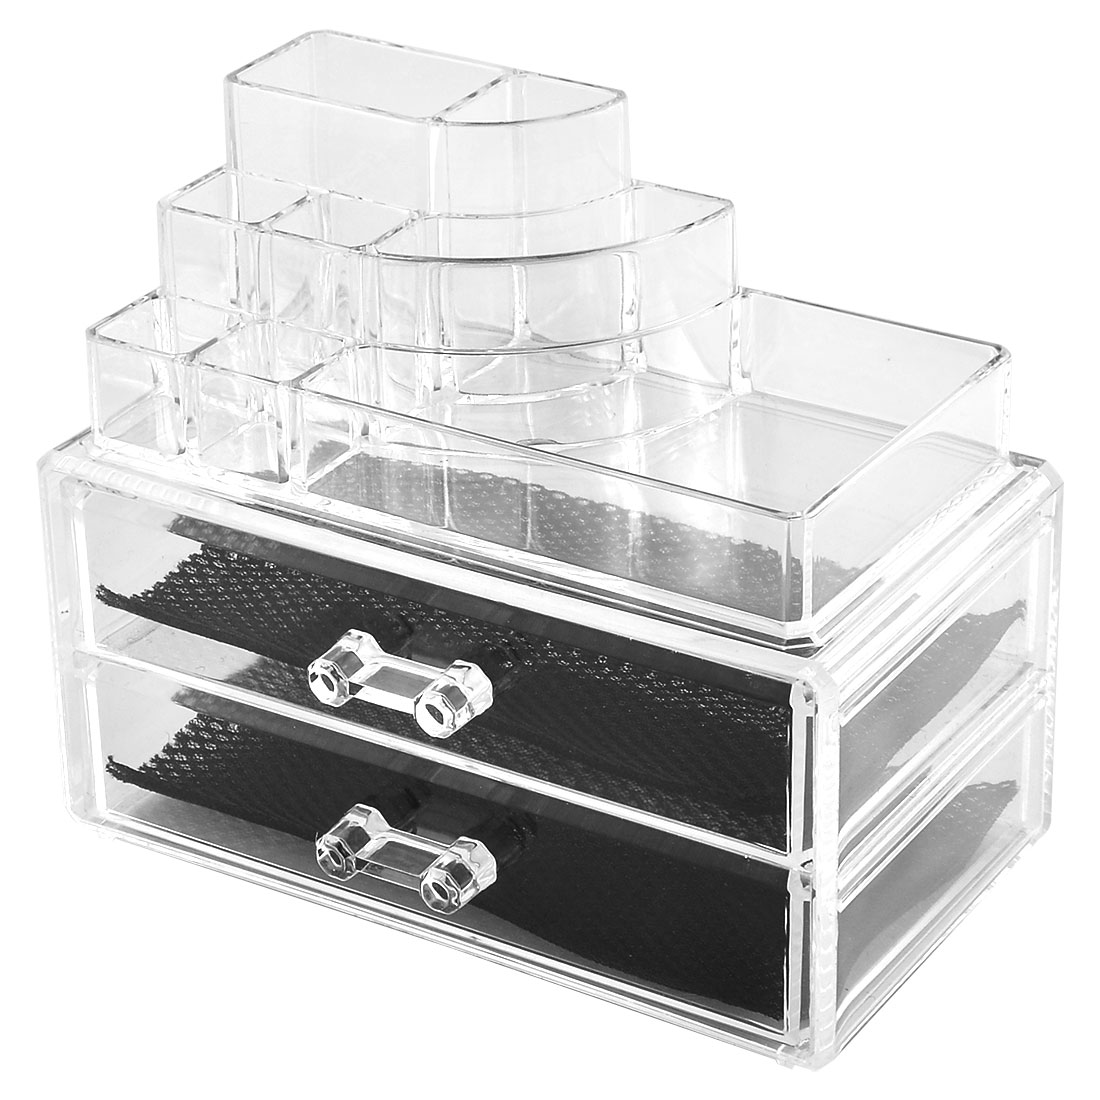 Home Acrylic Jewelry Makeup Cosmetic Case Organizer Display Box Drawers Set 2 in 1